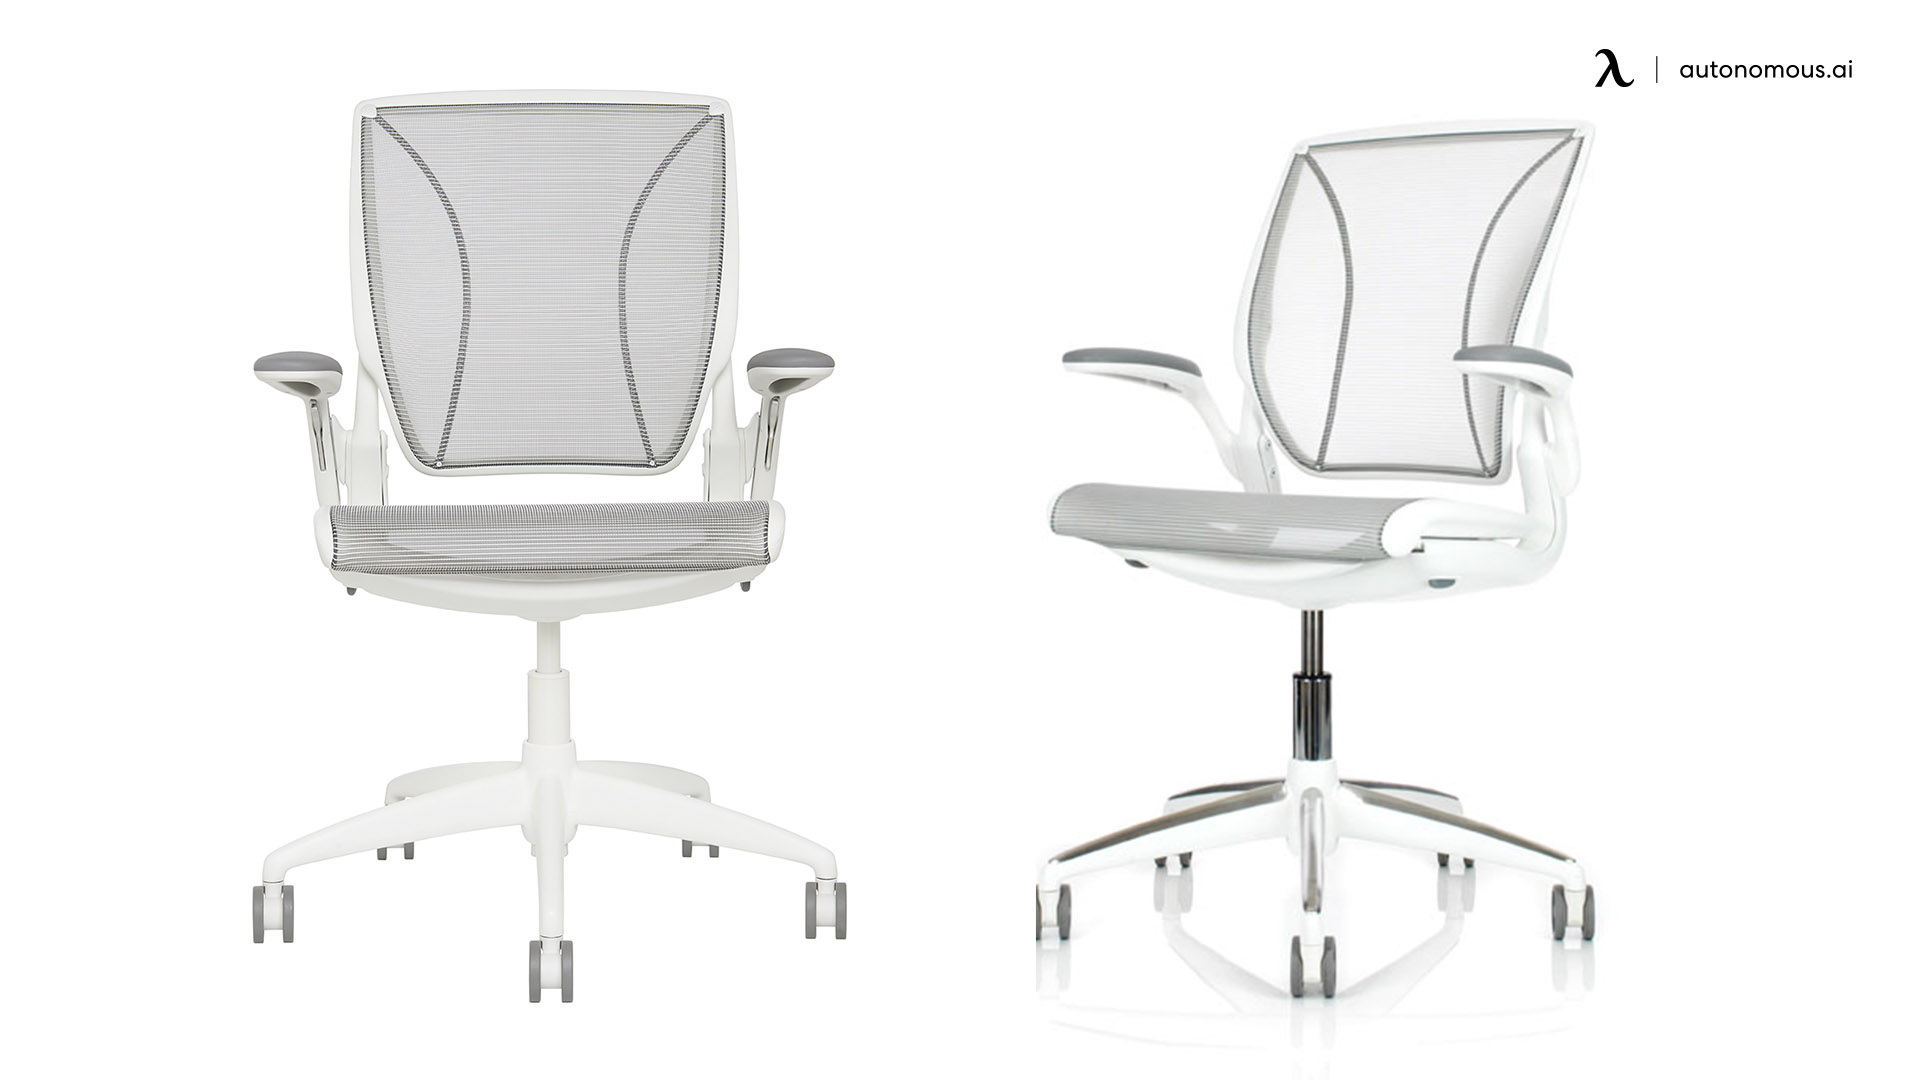 Humanscale Diffrient Office Chair